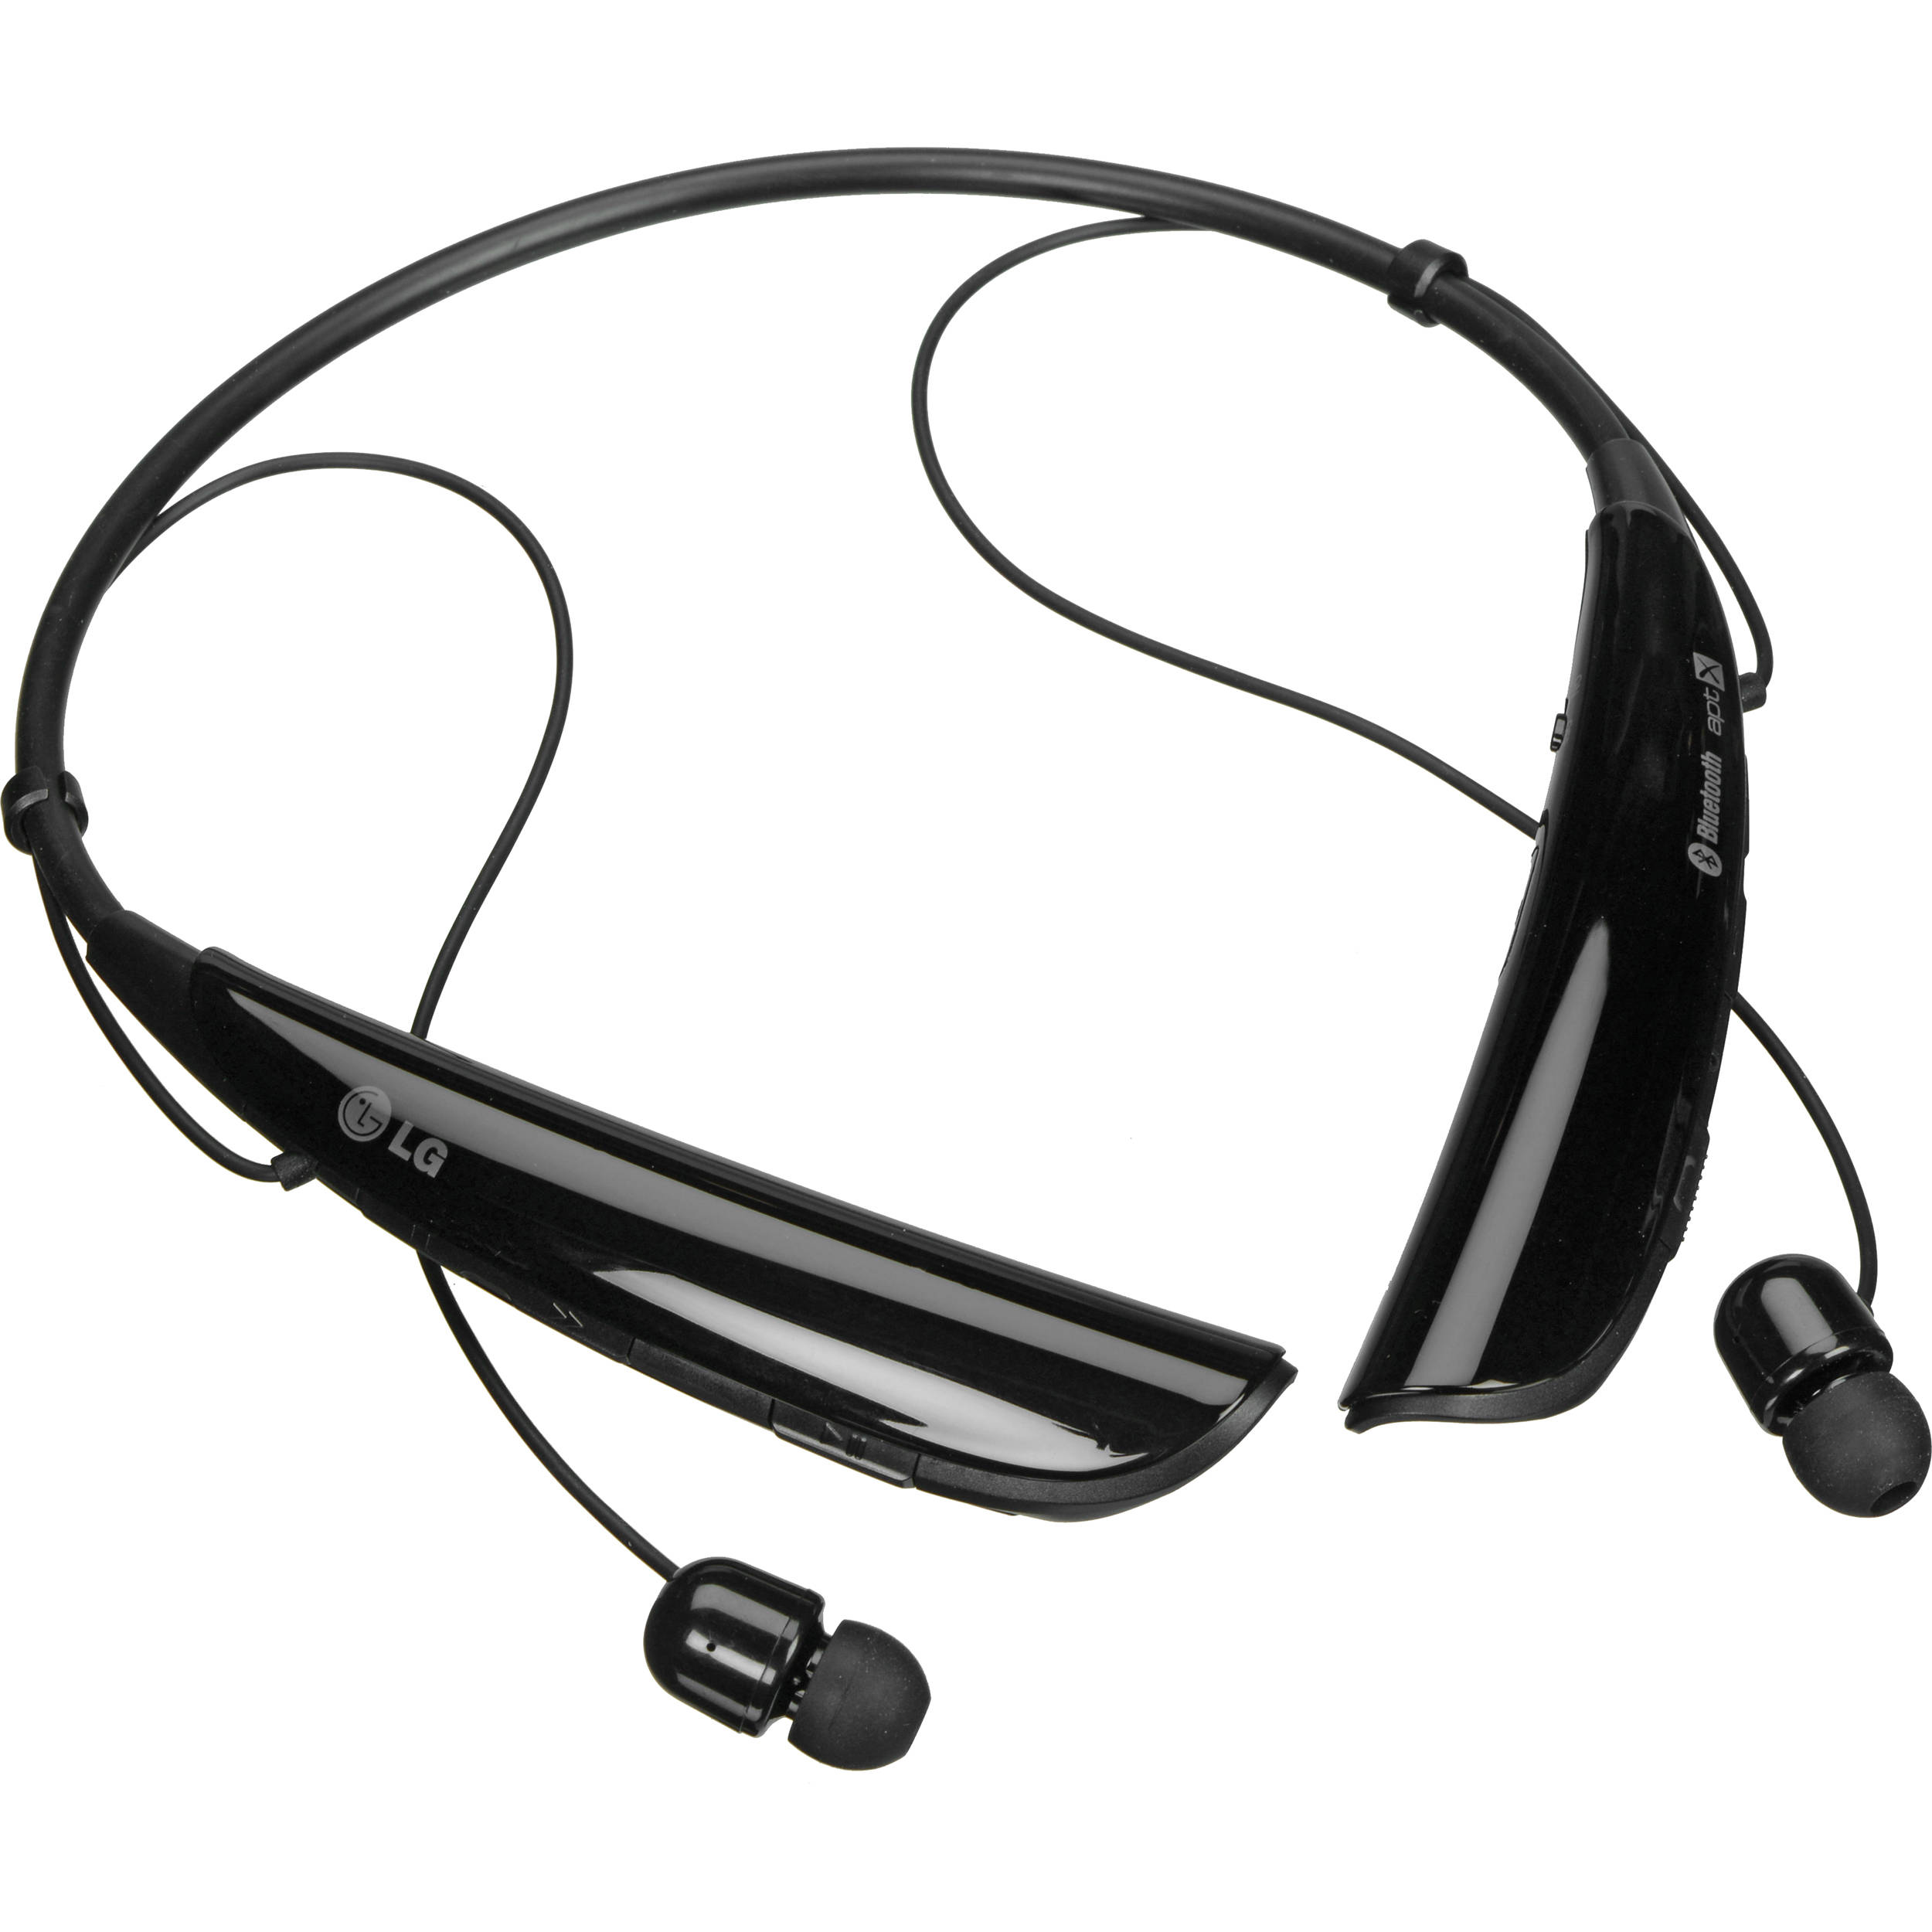 lg tone pro hbs750 bluetooth stereo headset hbs 750. Black Bedroom Furniture Sets. Home Design Ideas